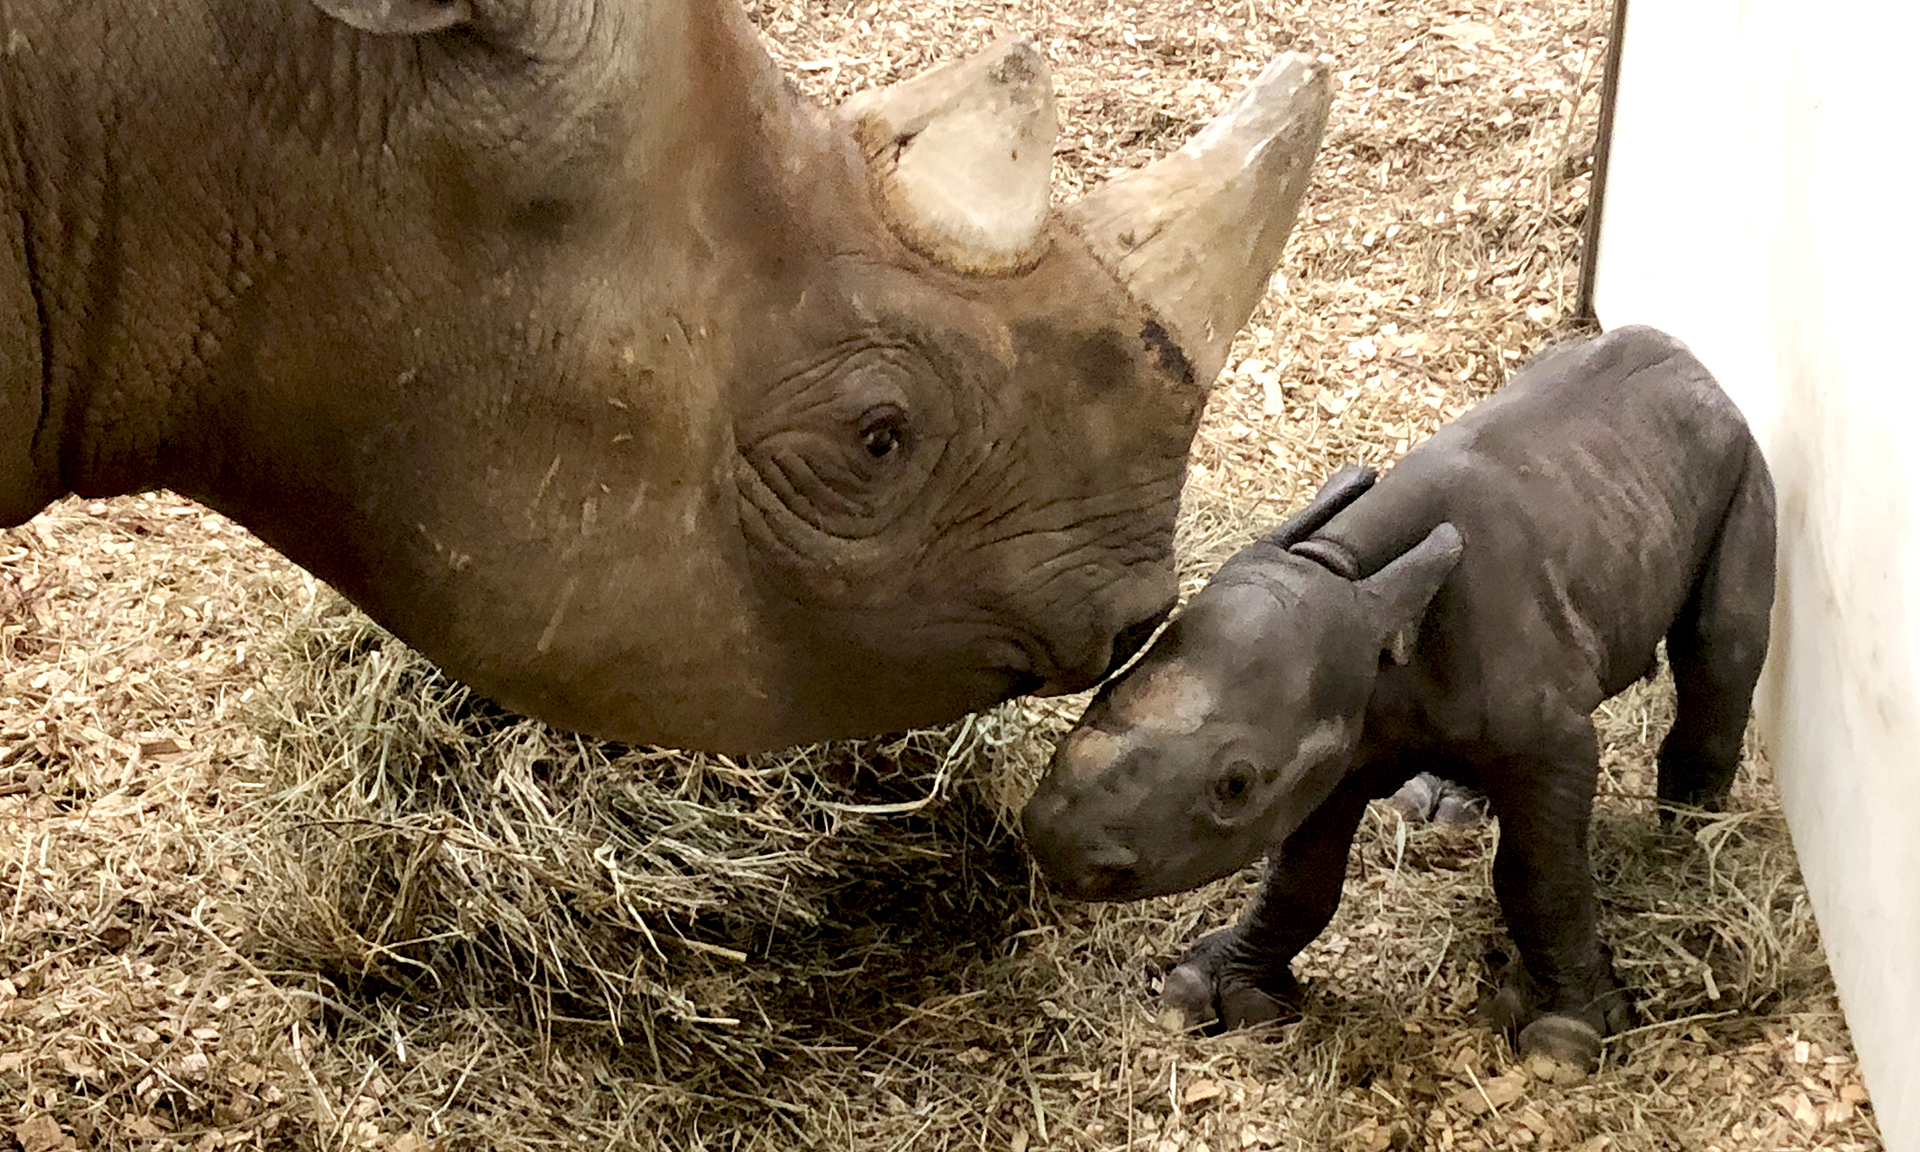 Oh Baby! Cleveland Metroparks Zoo Welcomes Newborn Rhino Calf